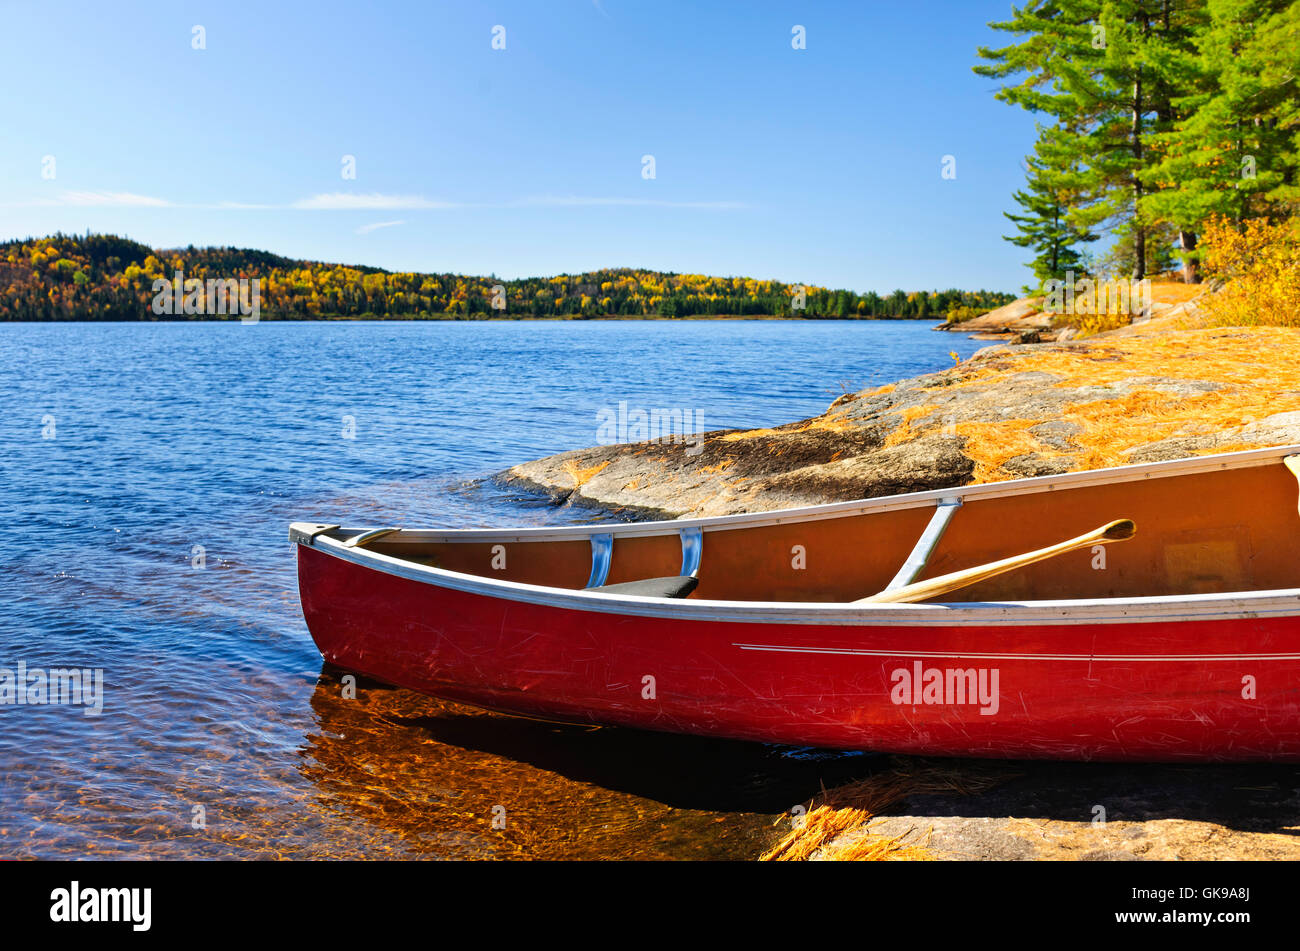 oar rocky fresh water - Stock Image